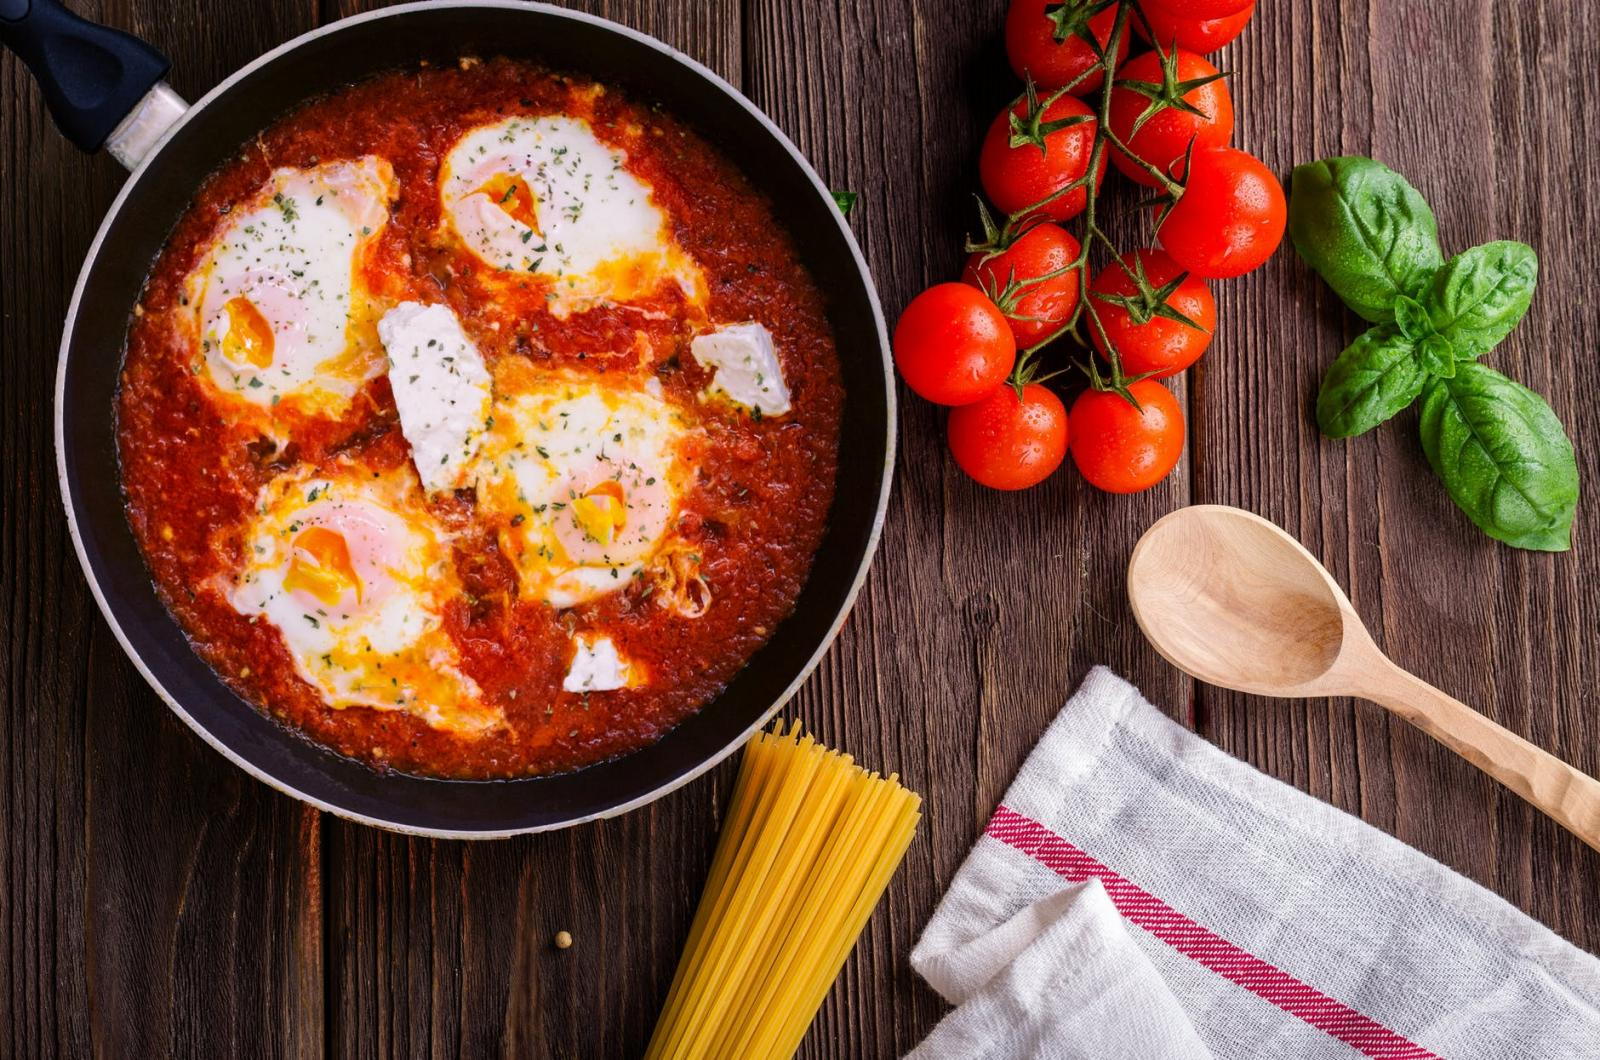 Pan-fried Tofu with Egg and Chive